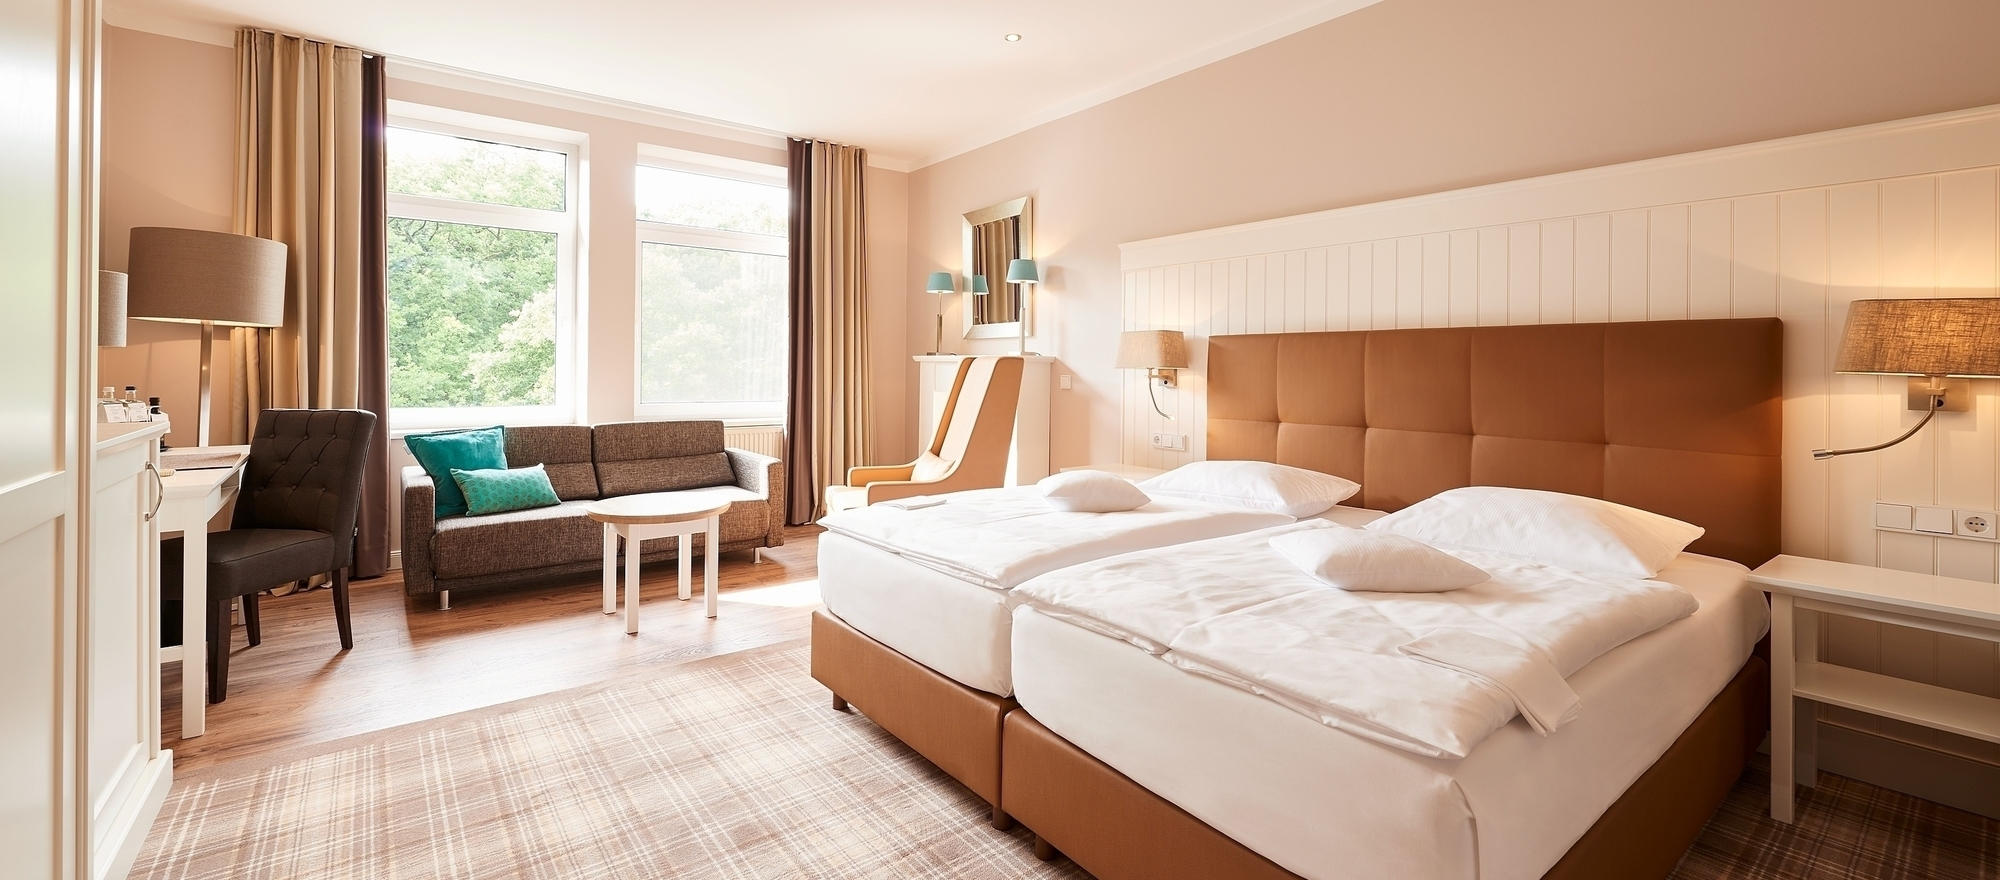 Exclusive and stylish furnished deluxerooms at the 4-star hotel Ringhotel Munte am Stadtwald in Bremen